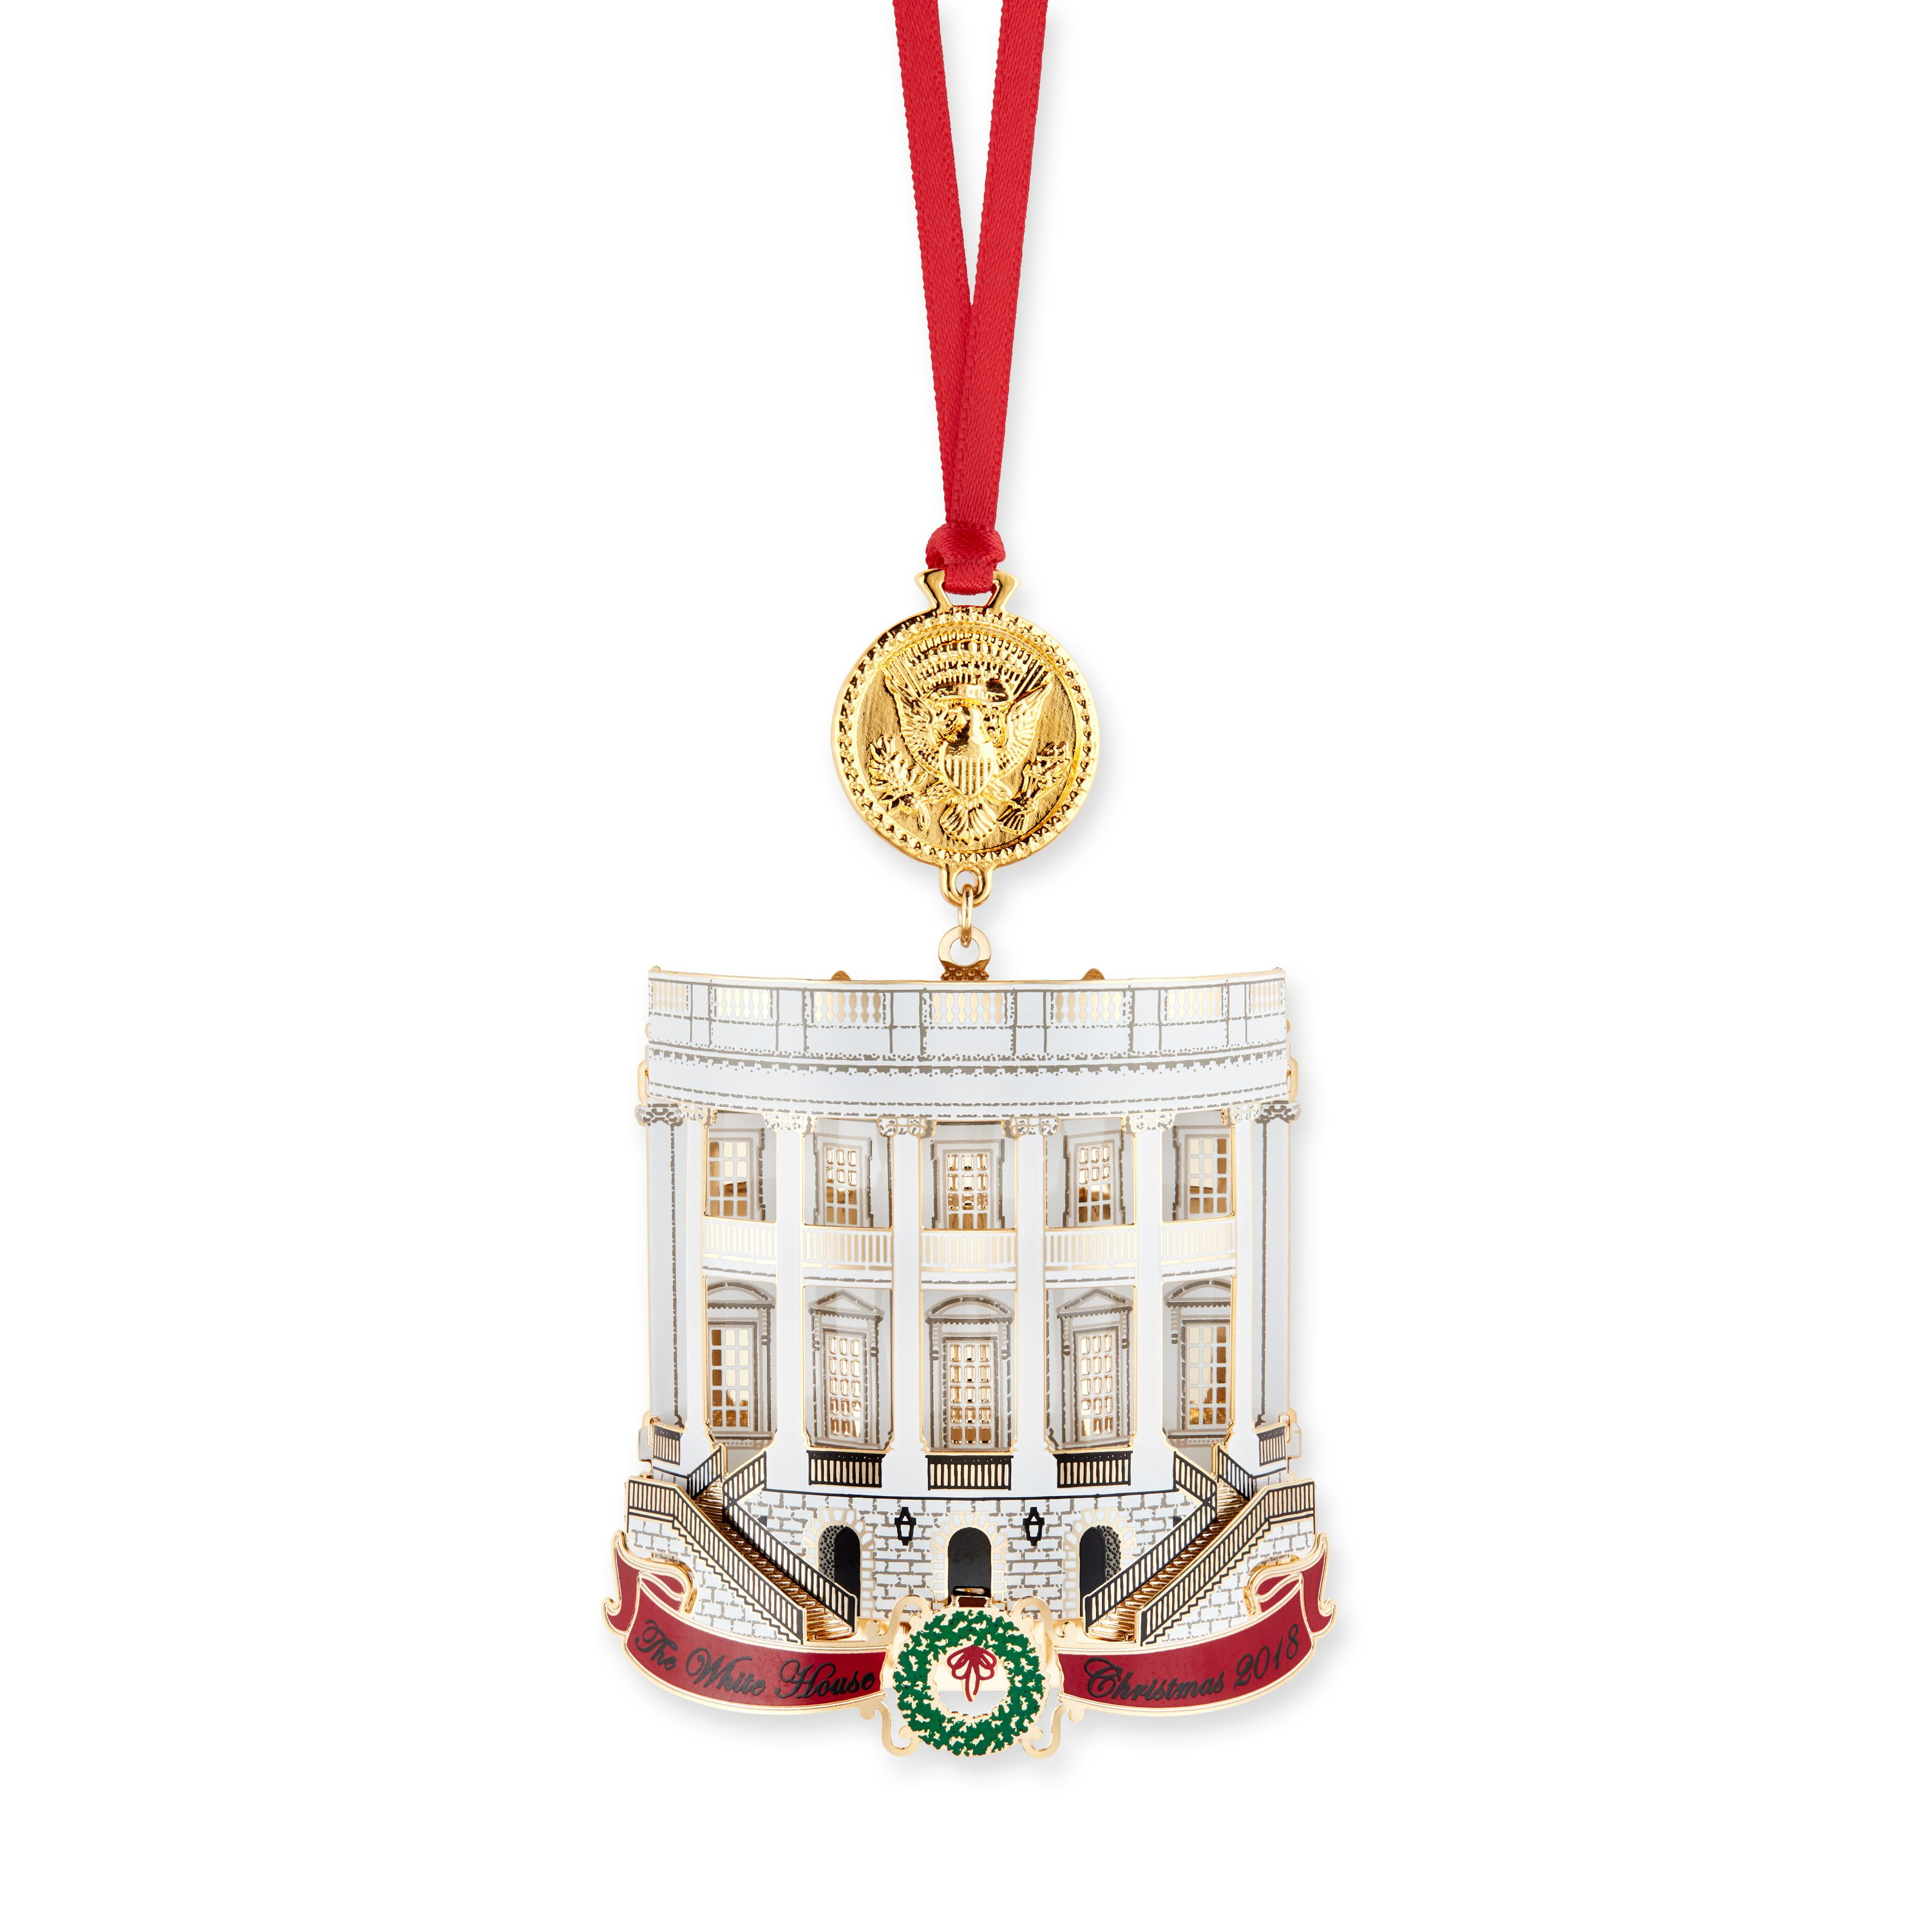 The White House Historical Association's 2018 White House Christmas Ornament honors the 33rd president, Harry S. Truman. The ornament illustrates significant changes made to the White House during Truman's administration, including his celebrated Truman Balcony, added in 1947–48 to the South Portico. The reverse side features his renovated Blue Room, which, like all the rooms of the house, was dismantled and rebuilt during the renovation of 1948–52. The Presidential Seal featured at the top of the ornament reflects the design as changed by Truman. Originally the American eagle looked toward its left talons, which hold a cluster of spears, weapons of war. Truman had the seal redesigned, turning the eagle's head away from the spears to its right talons, which hold the olive branches of peace.